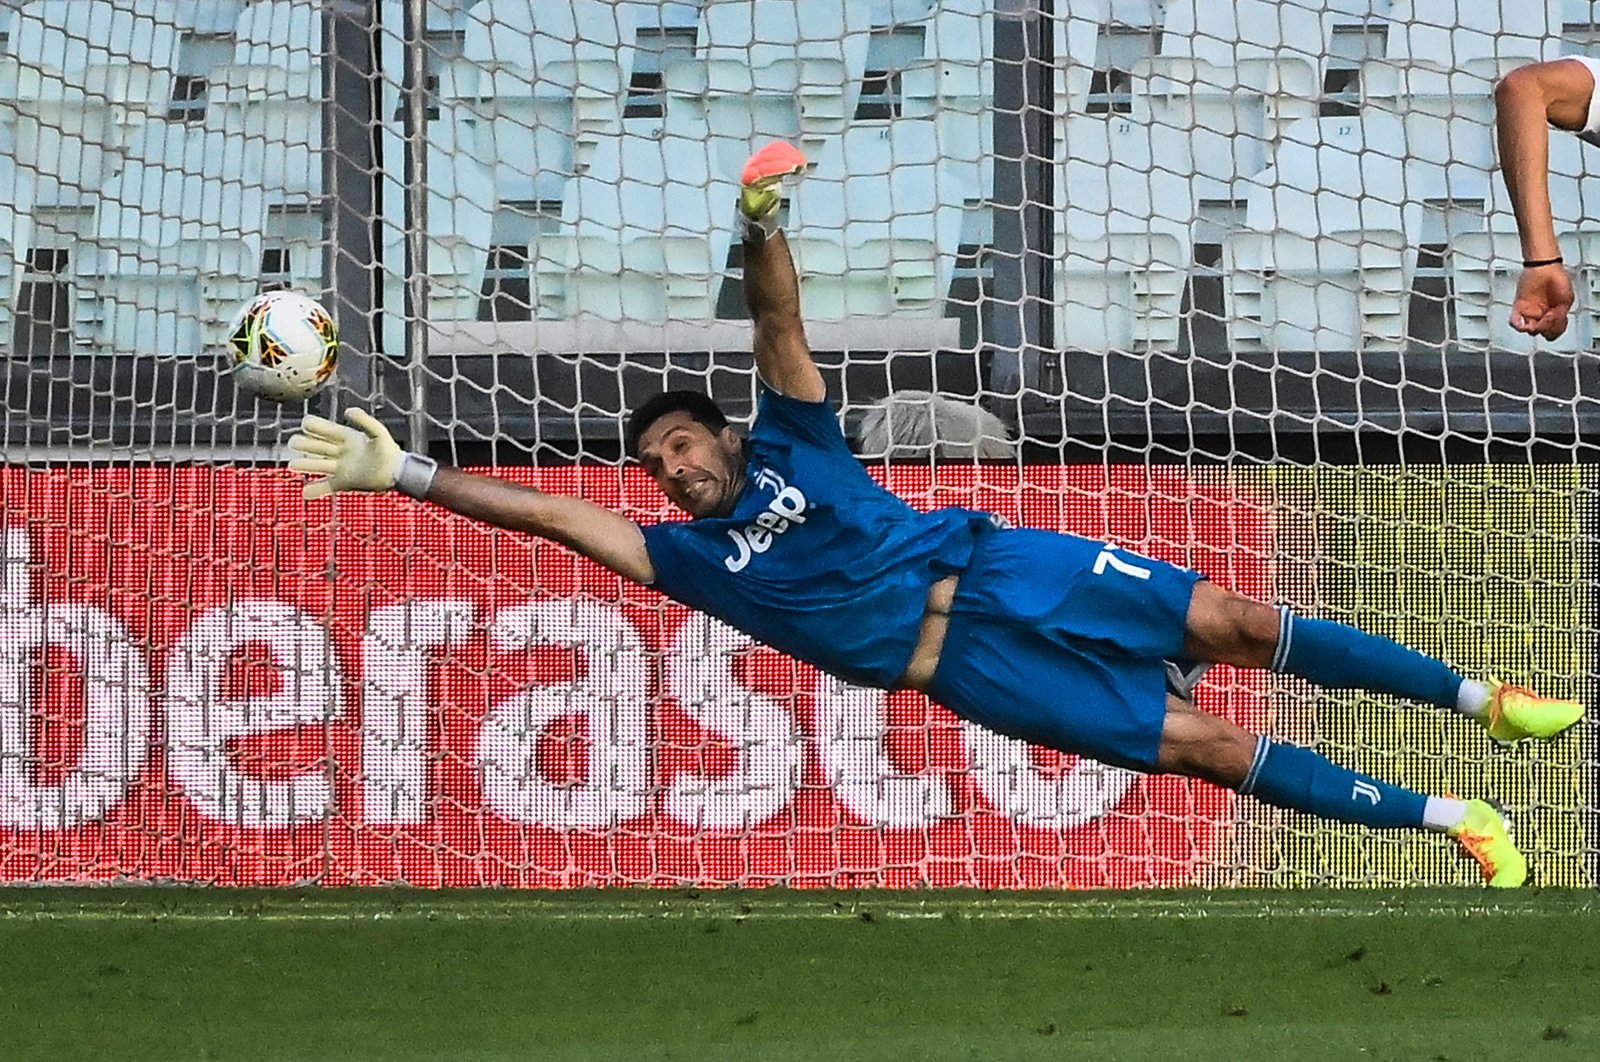 Juventus goalie Gianluigi Buffon makes a save during the Serie A football match between Juventus and Torino, at the Allianz Stadium in Turin, Italy, Saturday, July 4, 2020. (AFP Photo)